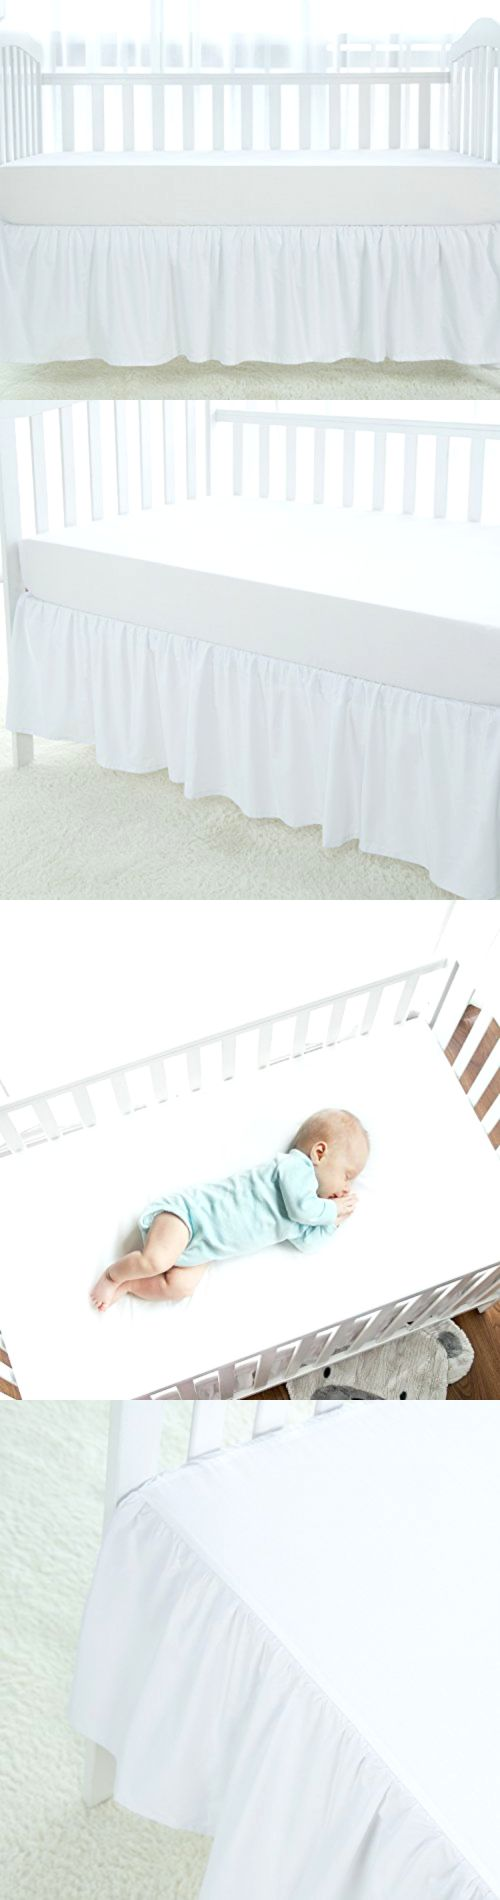 Cribskirts and Dust Ruffles 52345: White Crib Skirt Dust Ruffle, 100 Natural Cotton, Nursery Crib Bedding Skirt F -> BUY IT NOW ONLY: $54.62 on eBay!